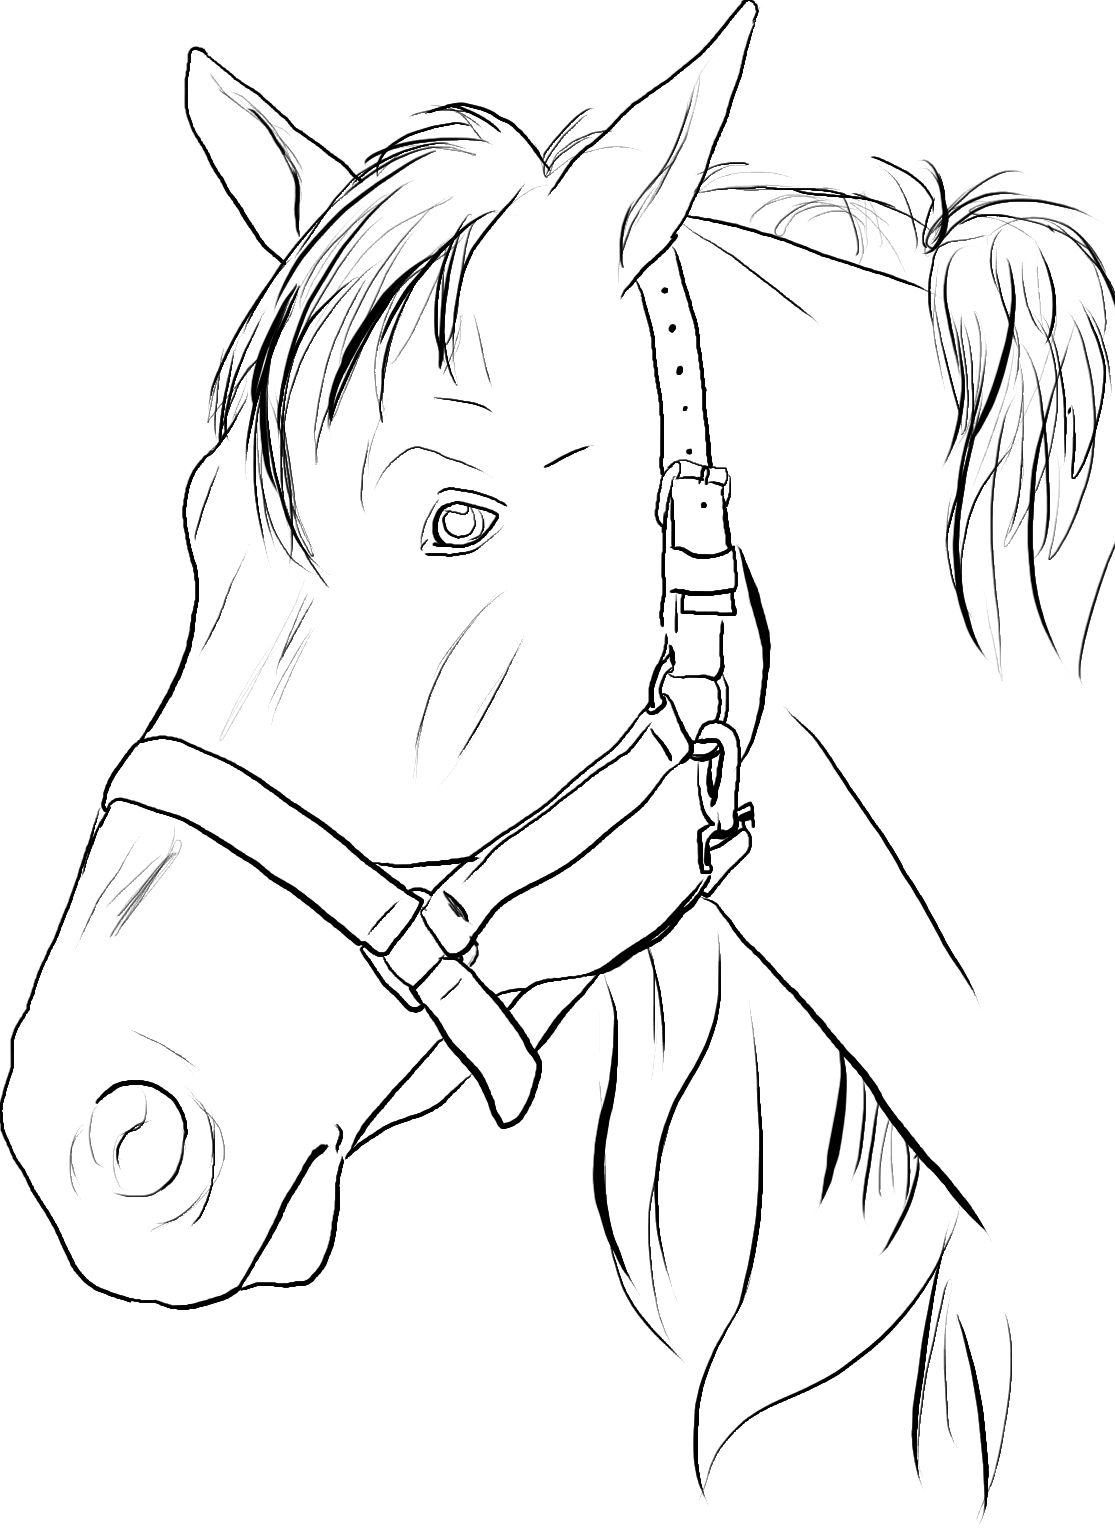 horse head coloring page # 5